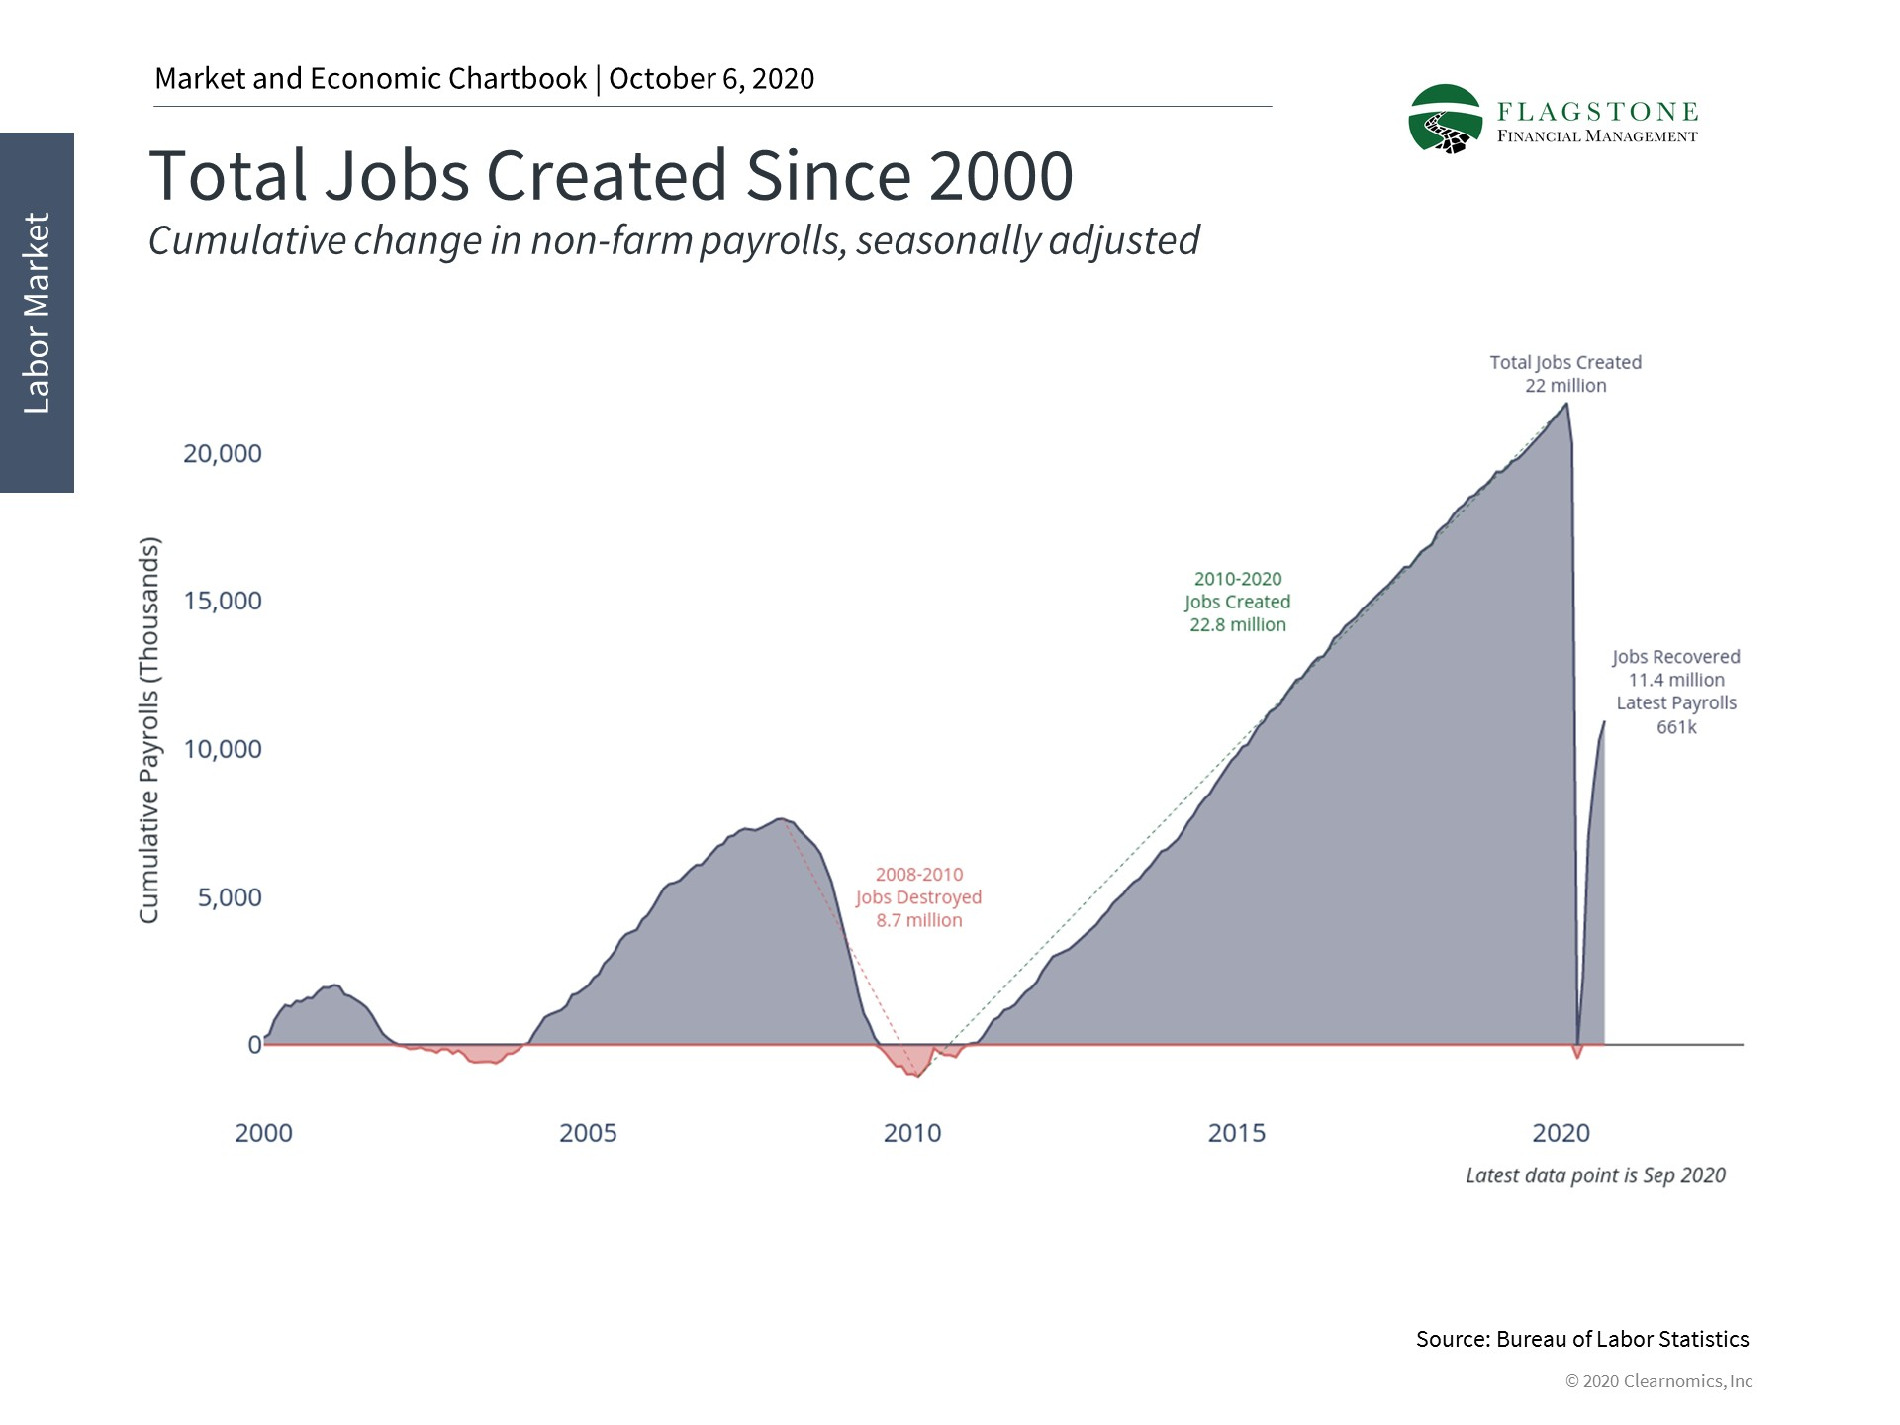 Chart showing total jobs created since 2000